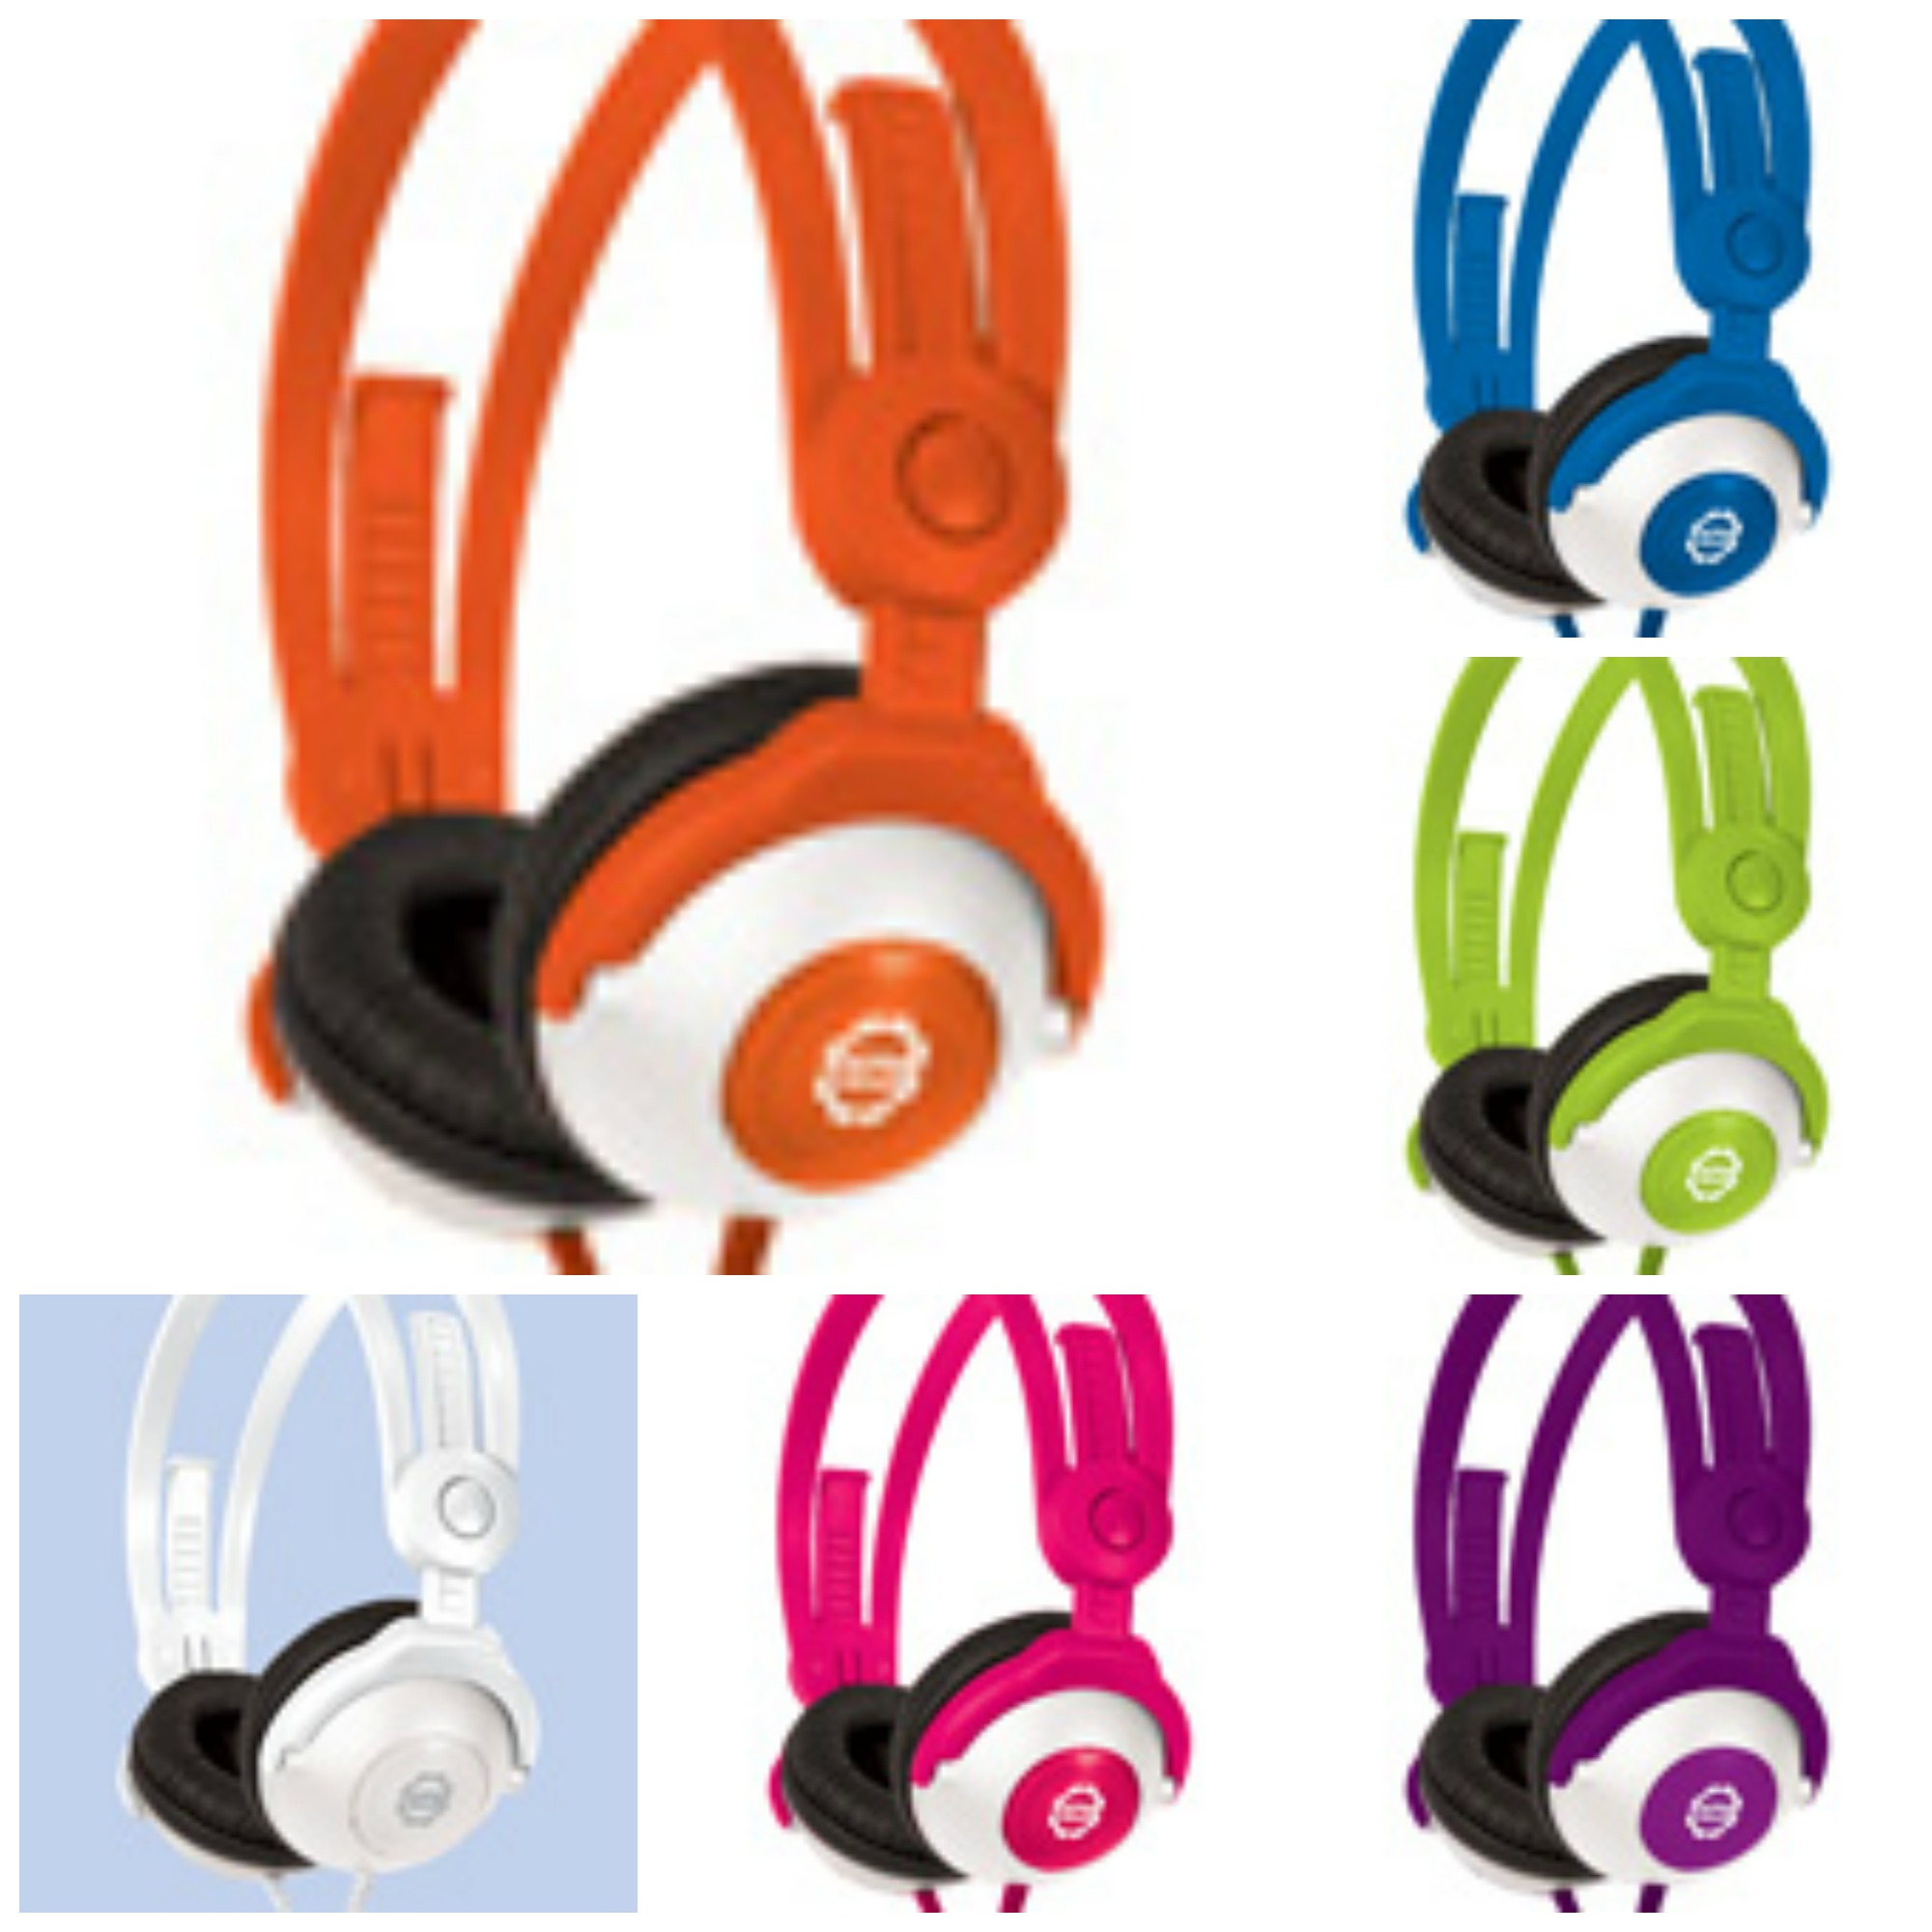 Kidz Gear Headphones Giveaway >> Bragworthy Christmas Kidz Gear Wired Headphones Giveaway